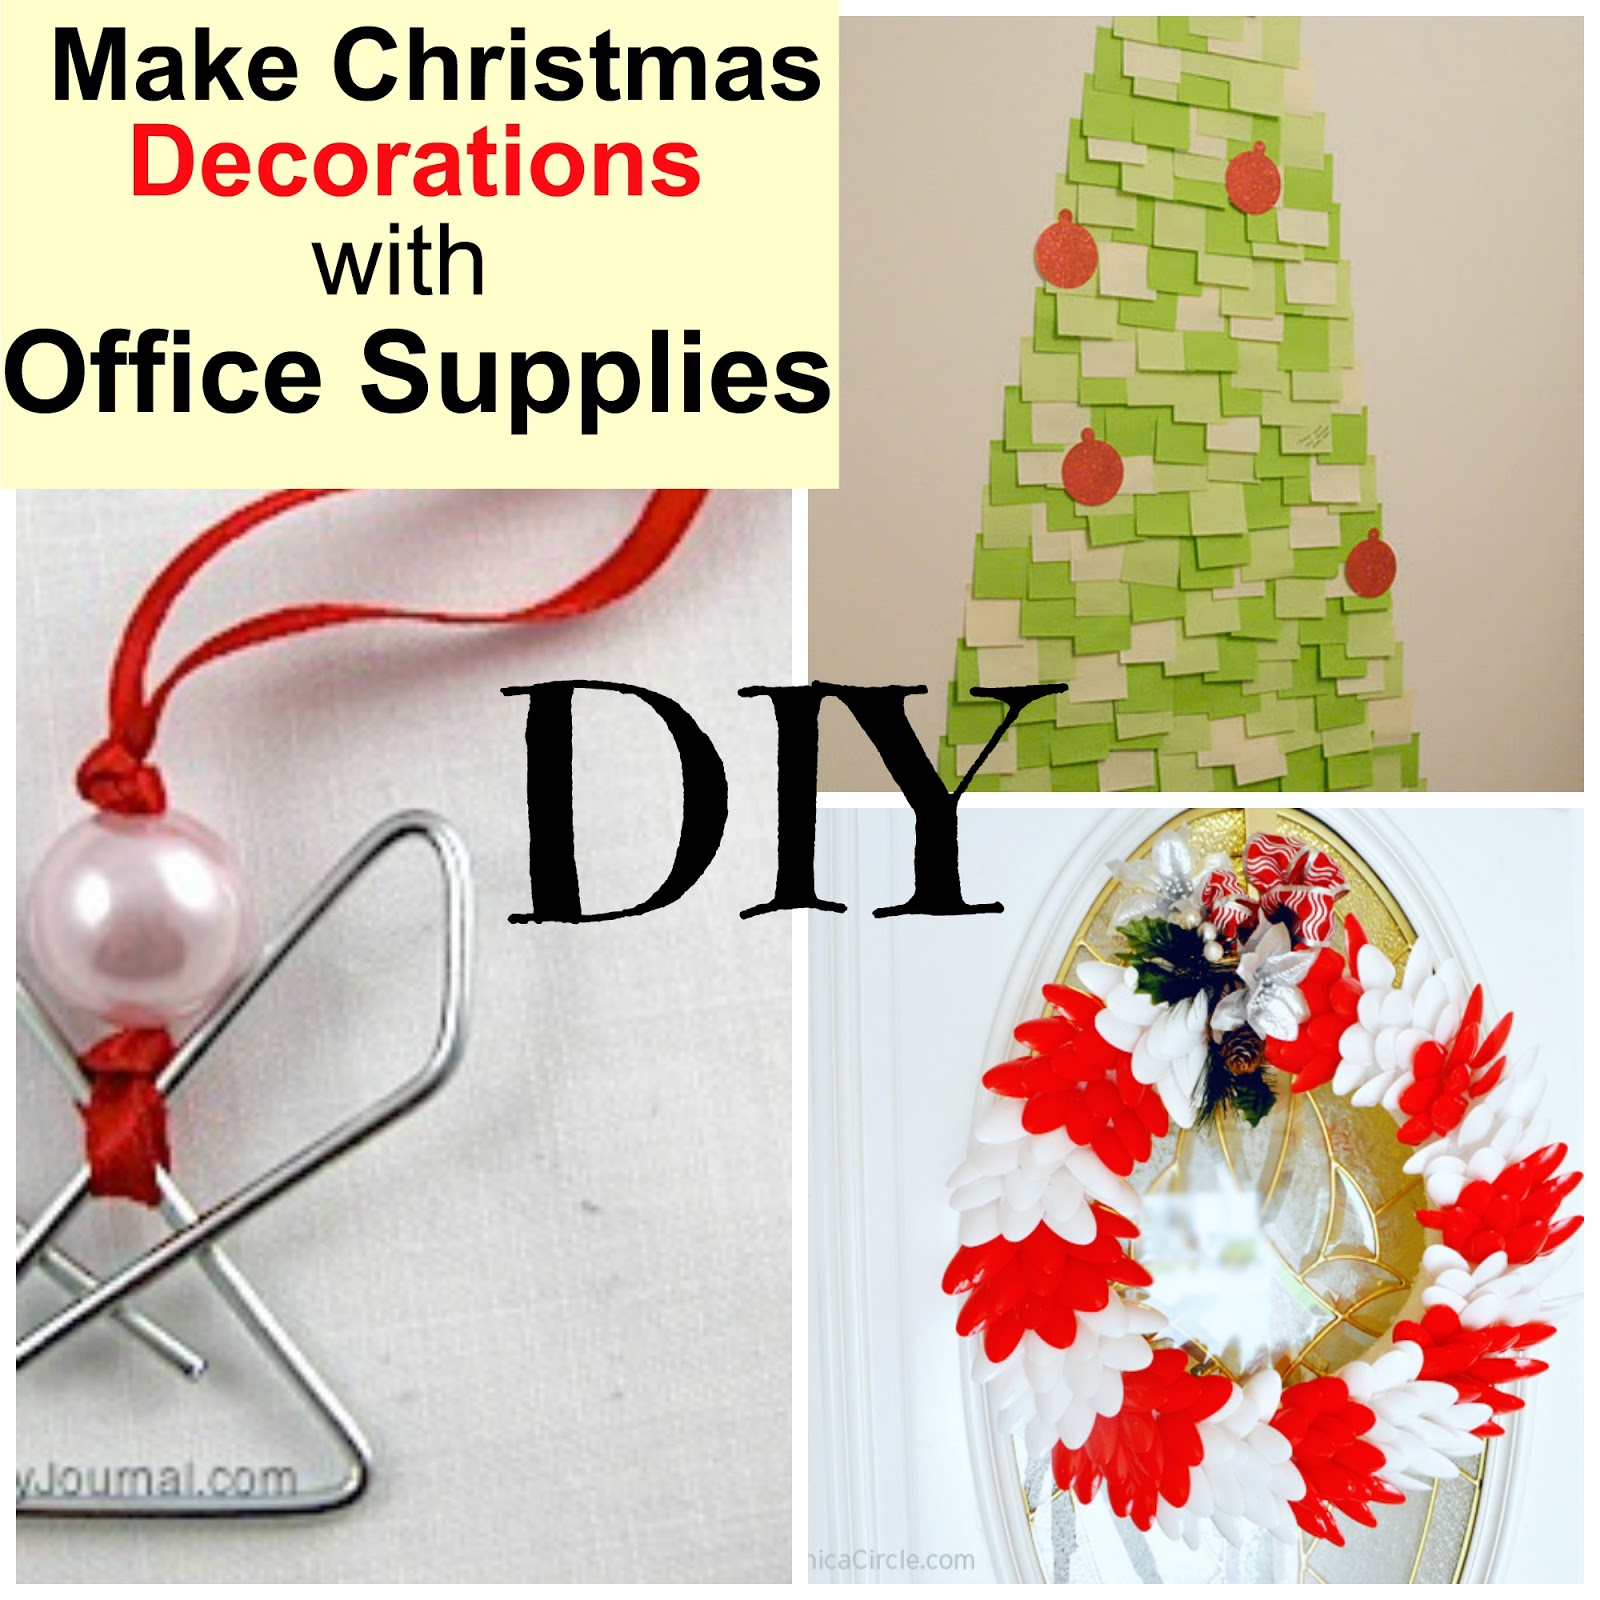 DIY Office Supplies Christmas Decorations